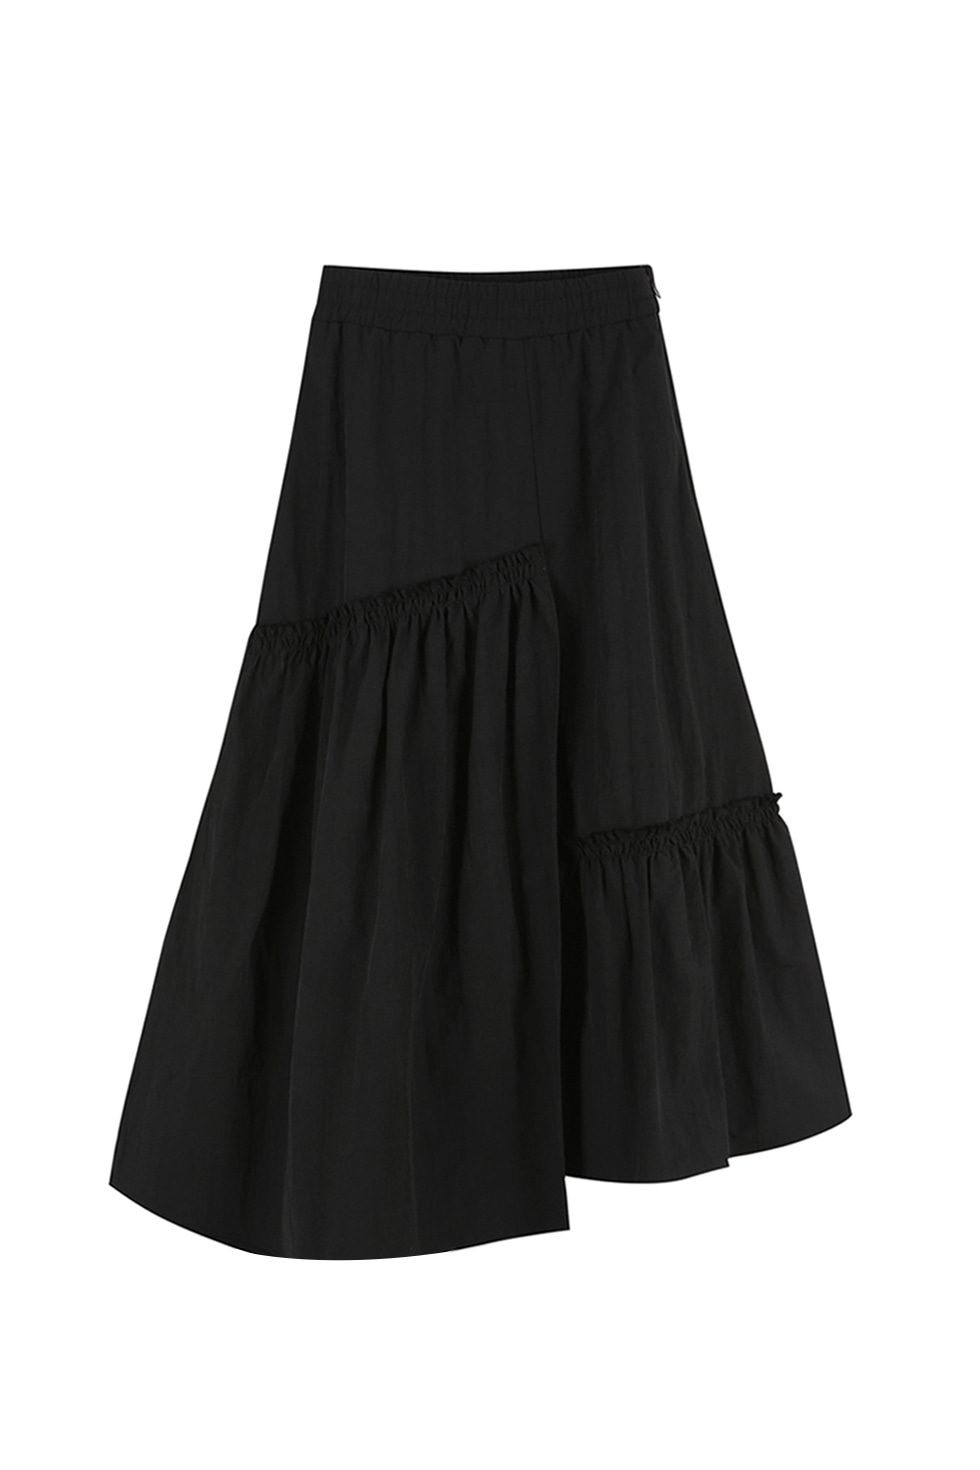 UNBALANCED RUFFLE SKIRT - BLACK